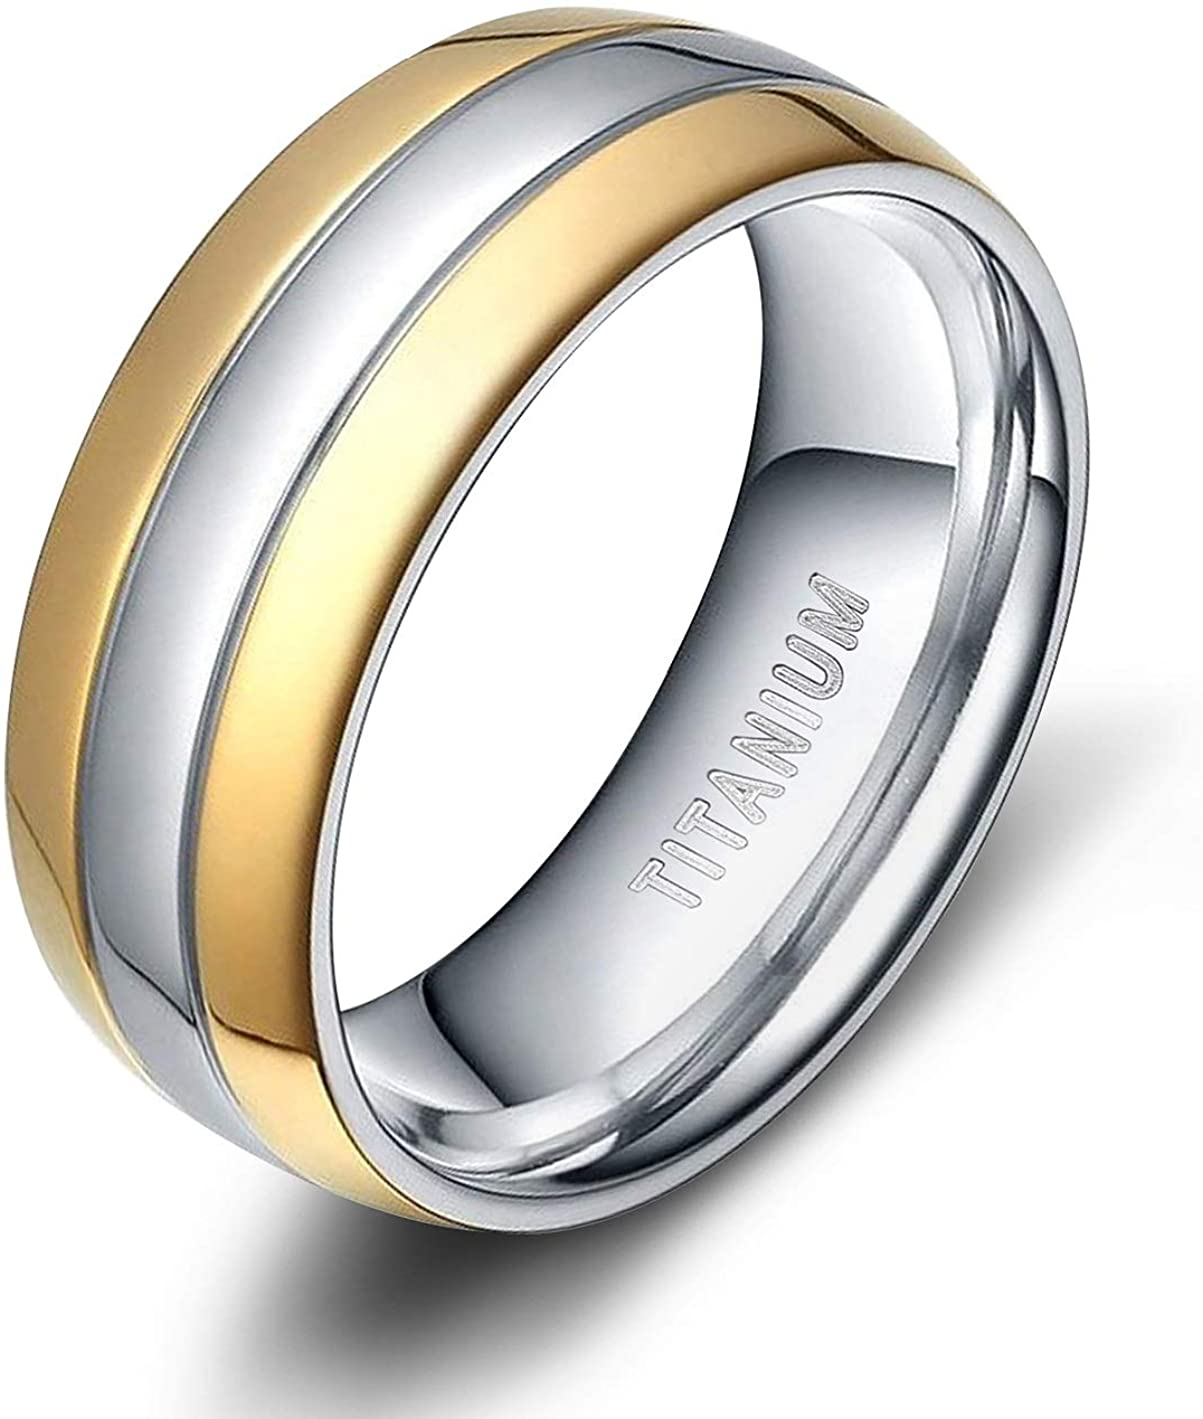 TIGRADE 6mm 8mm Titanium Ring Two Tone Dome Polished Band Comfort Fit Size 5-13